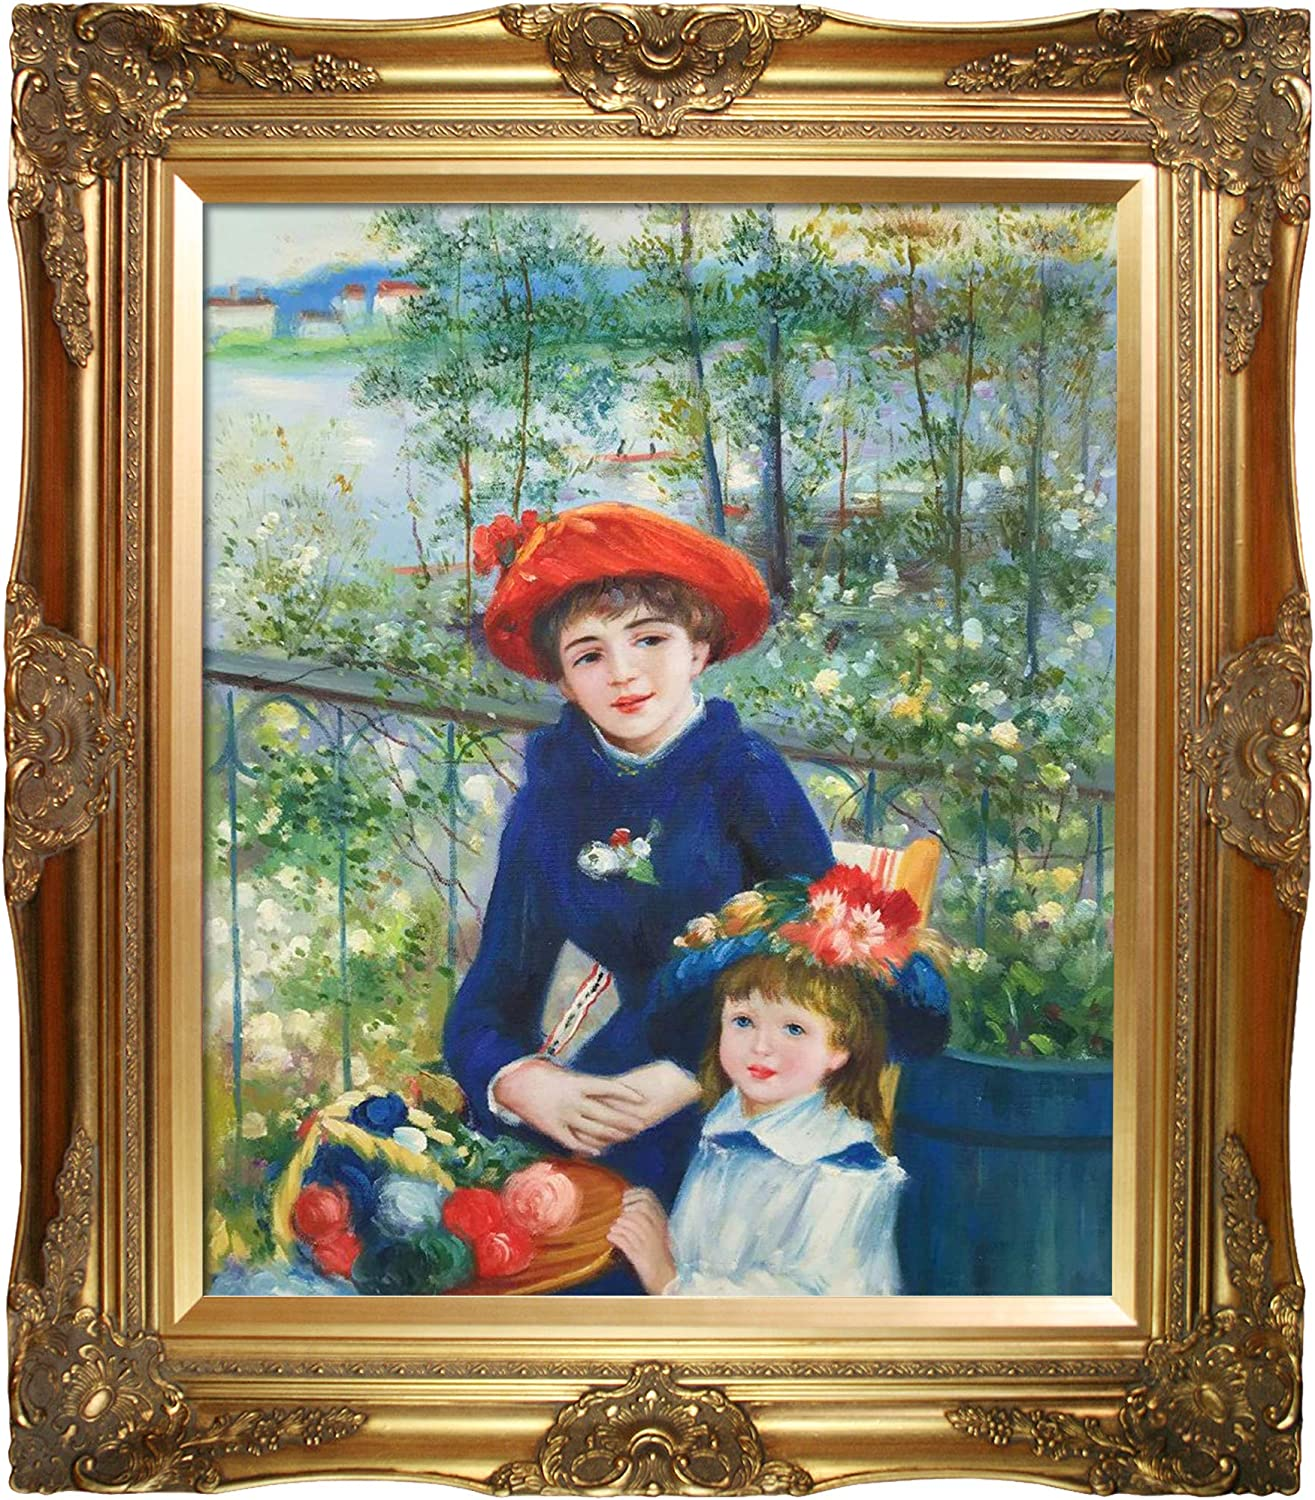 overstockArt Two Sisters (On The Terrace), 1881 with Victorian Gold Framed Oil Painting, 32